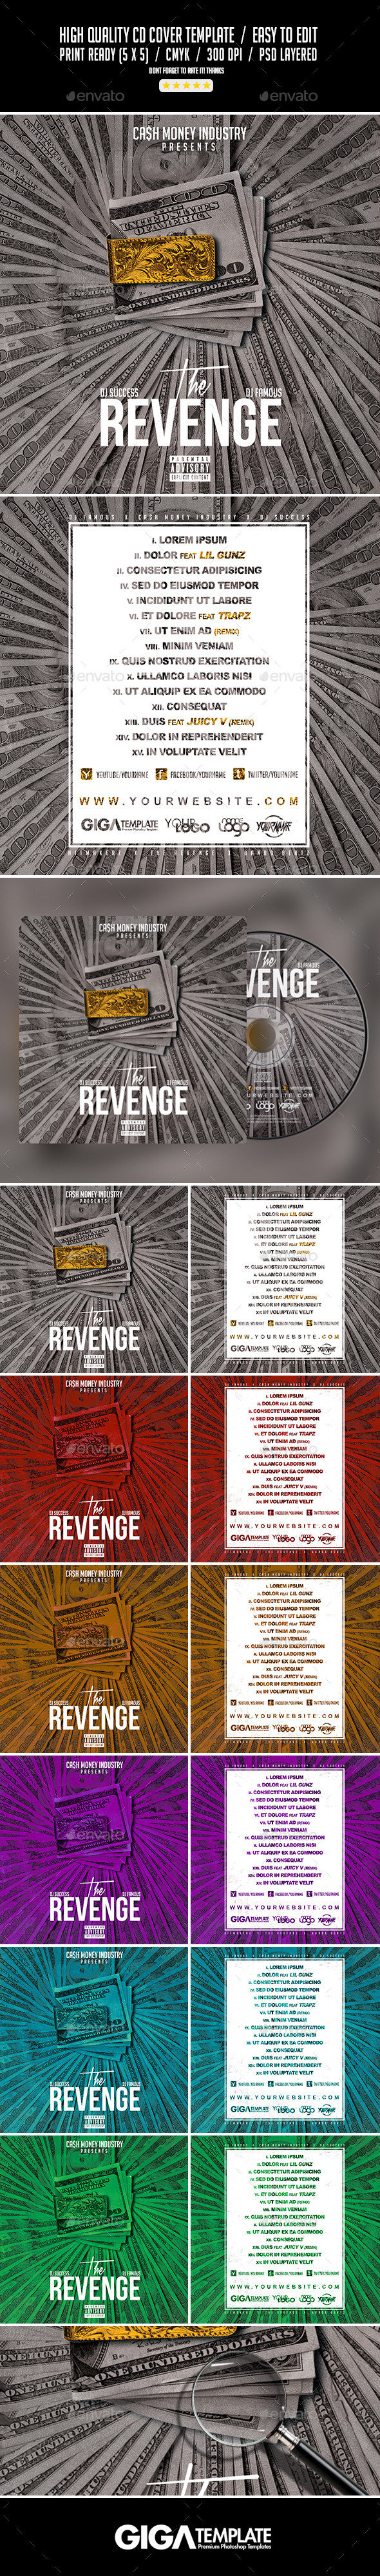 The Revenge | Mixtape Tape Album CD Cover Template - CD & DVD Artwork Print Templates